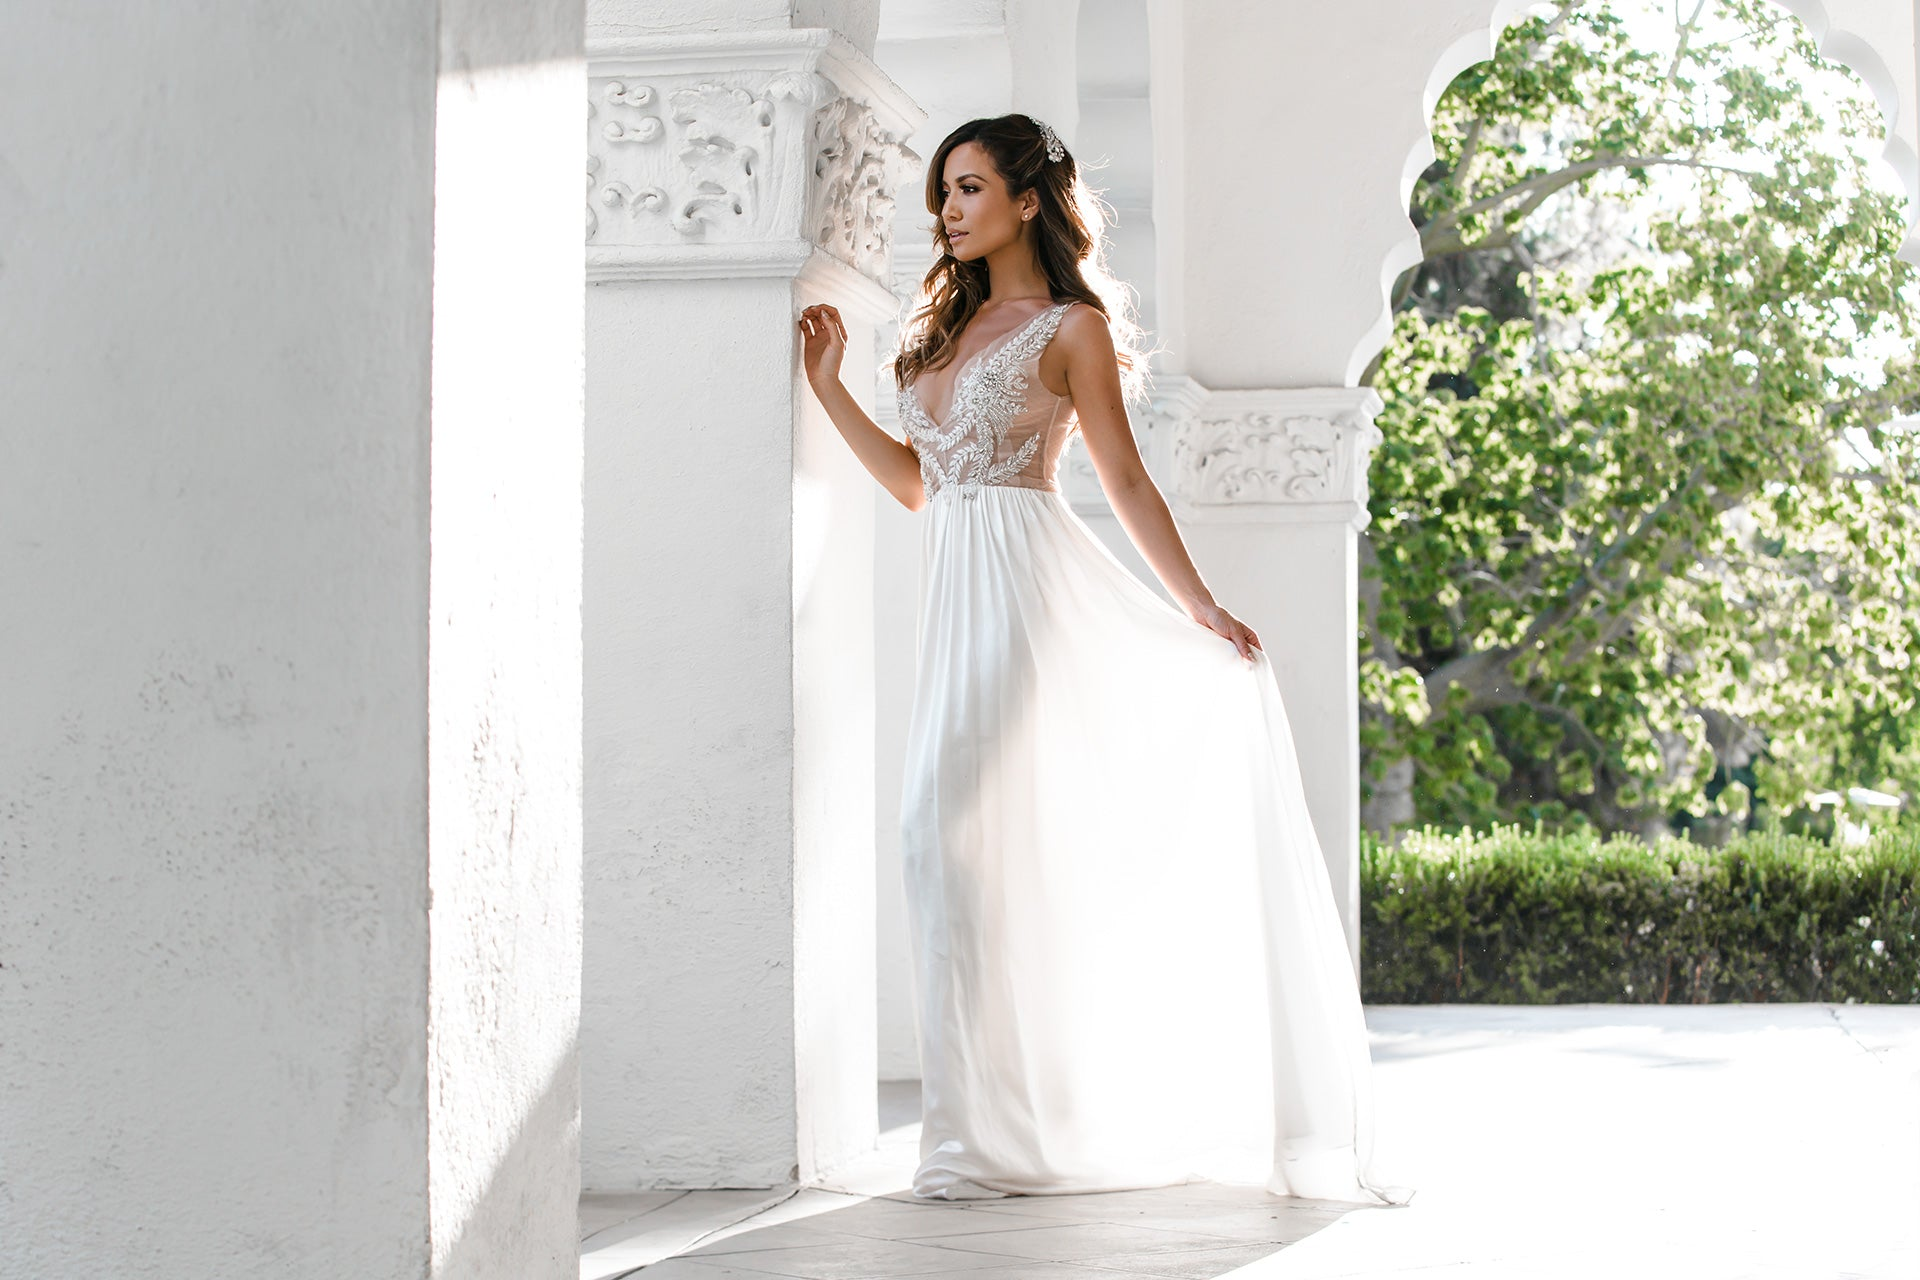 BRIDE TO BE JESSIE MALAY IN LURELLY – Lurelly